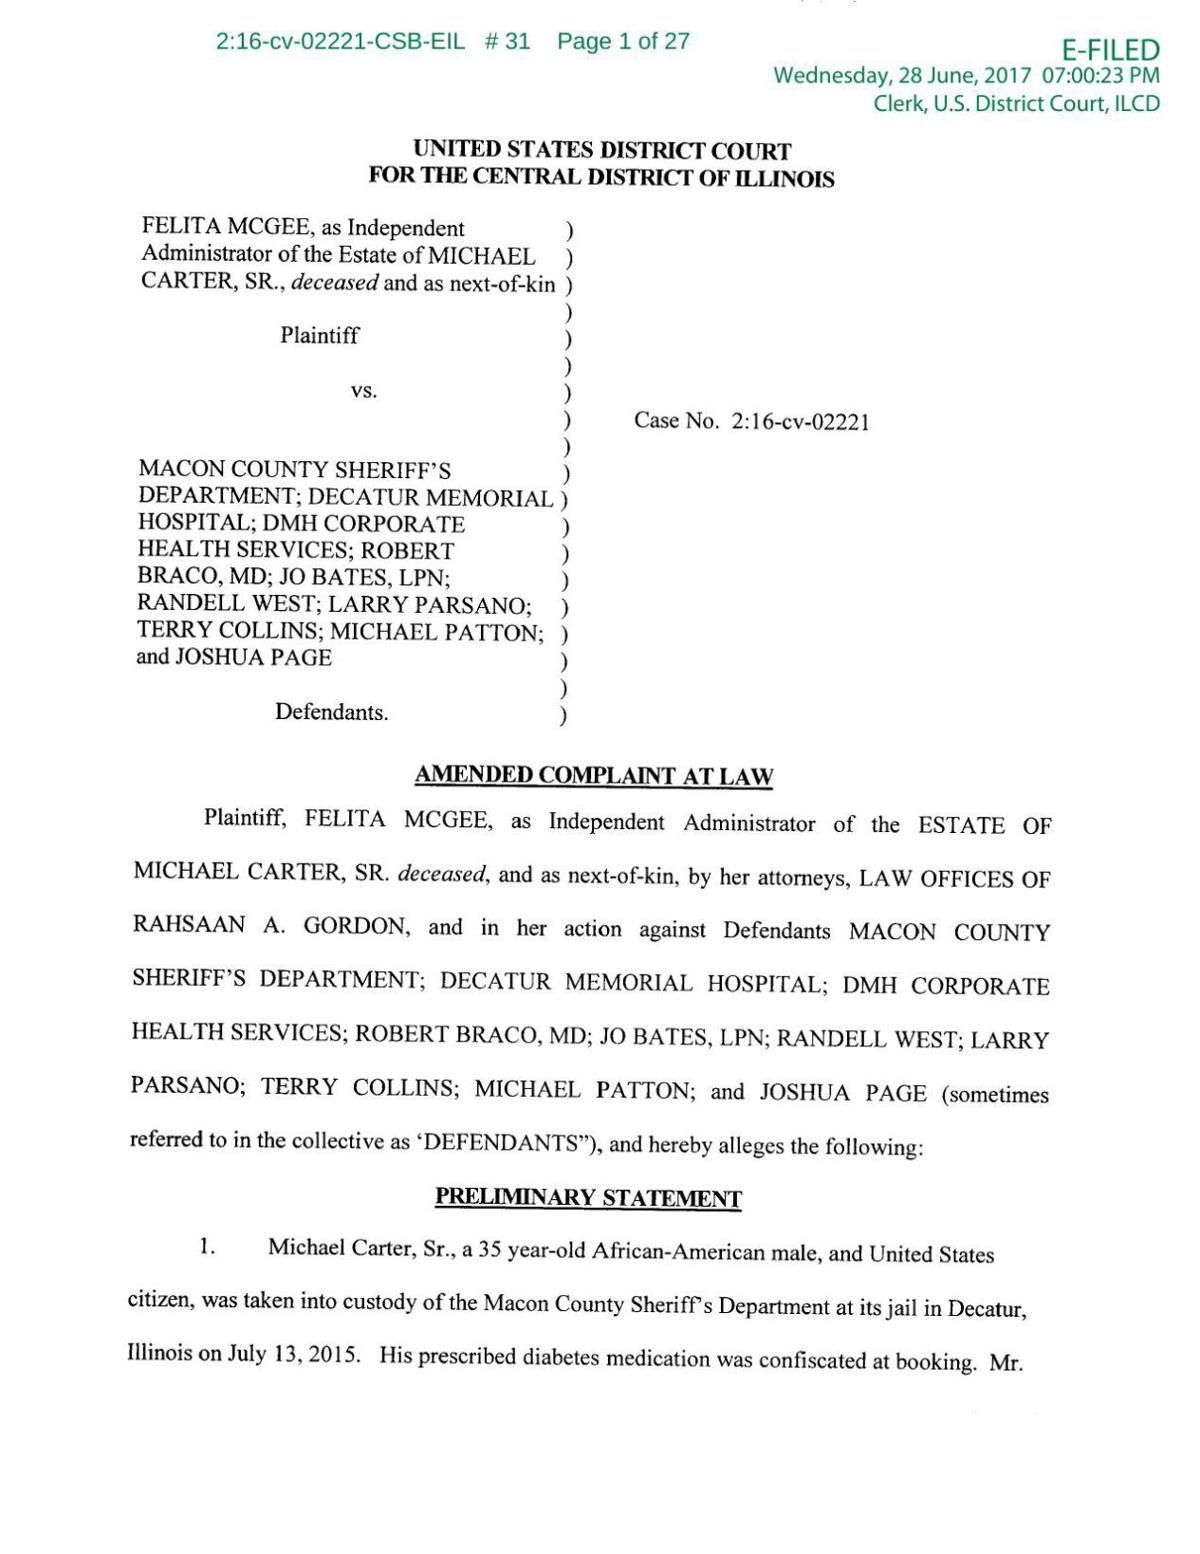 McGee Lawsuit - Amended Complaint